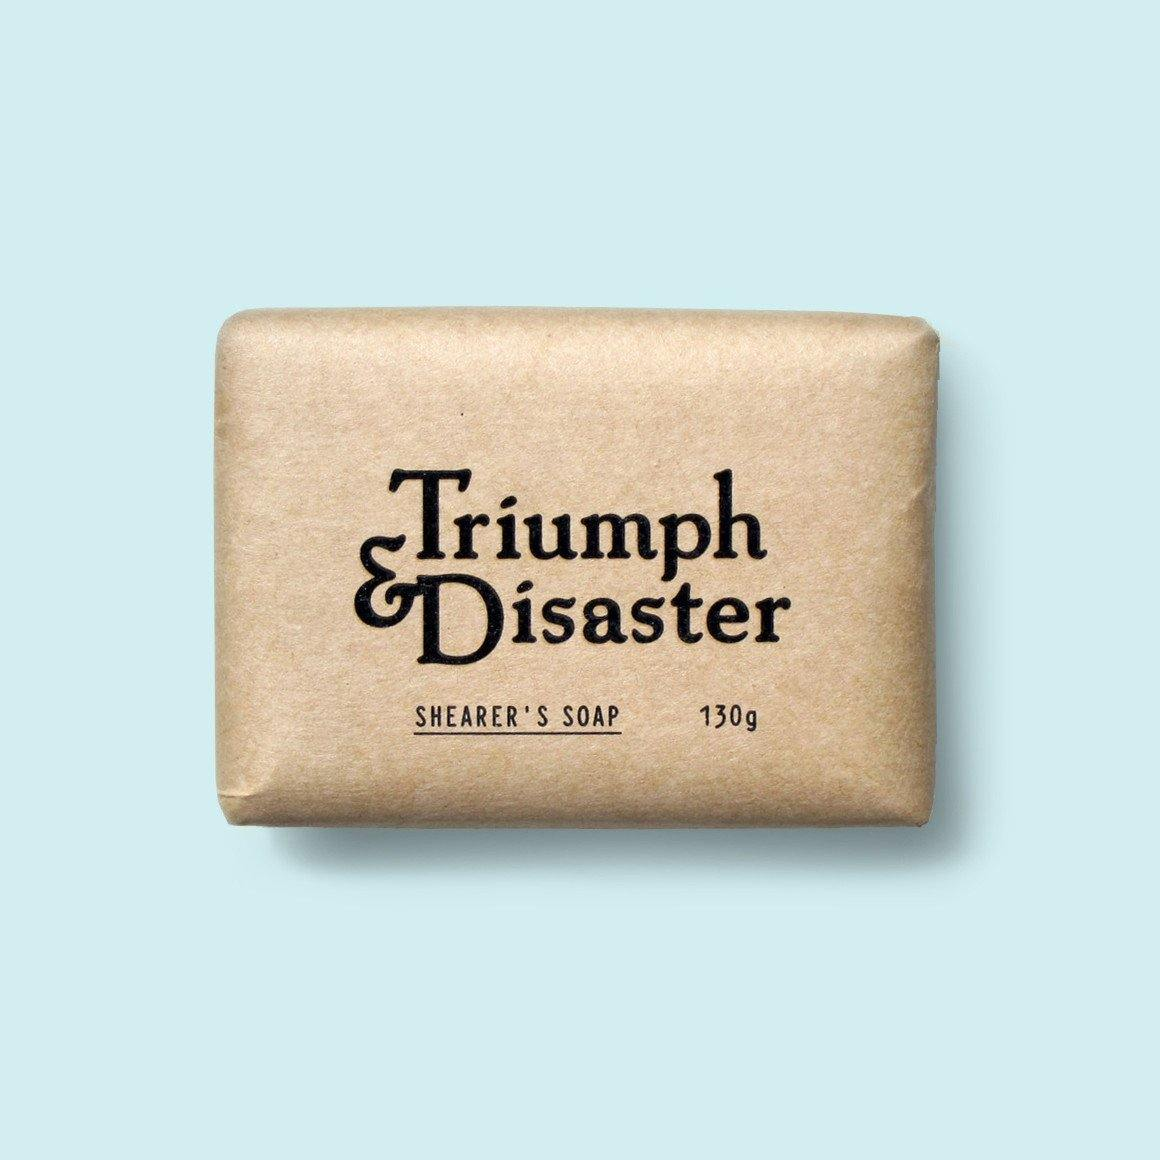 Shearers Soap - Exfoliante Corporal - Triumph & Disaster at Barbazul - 1